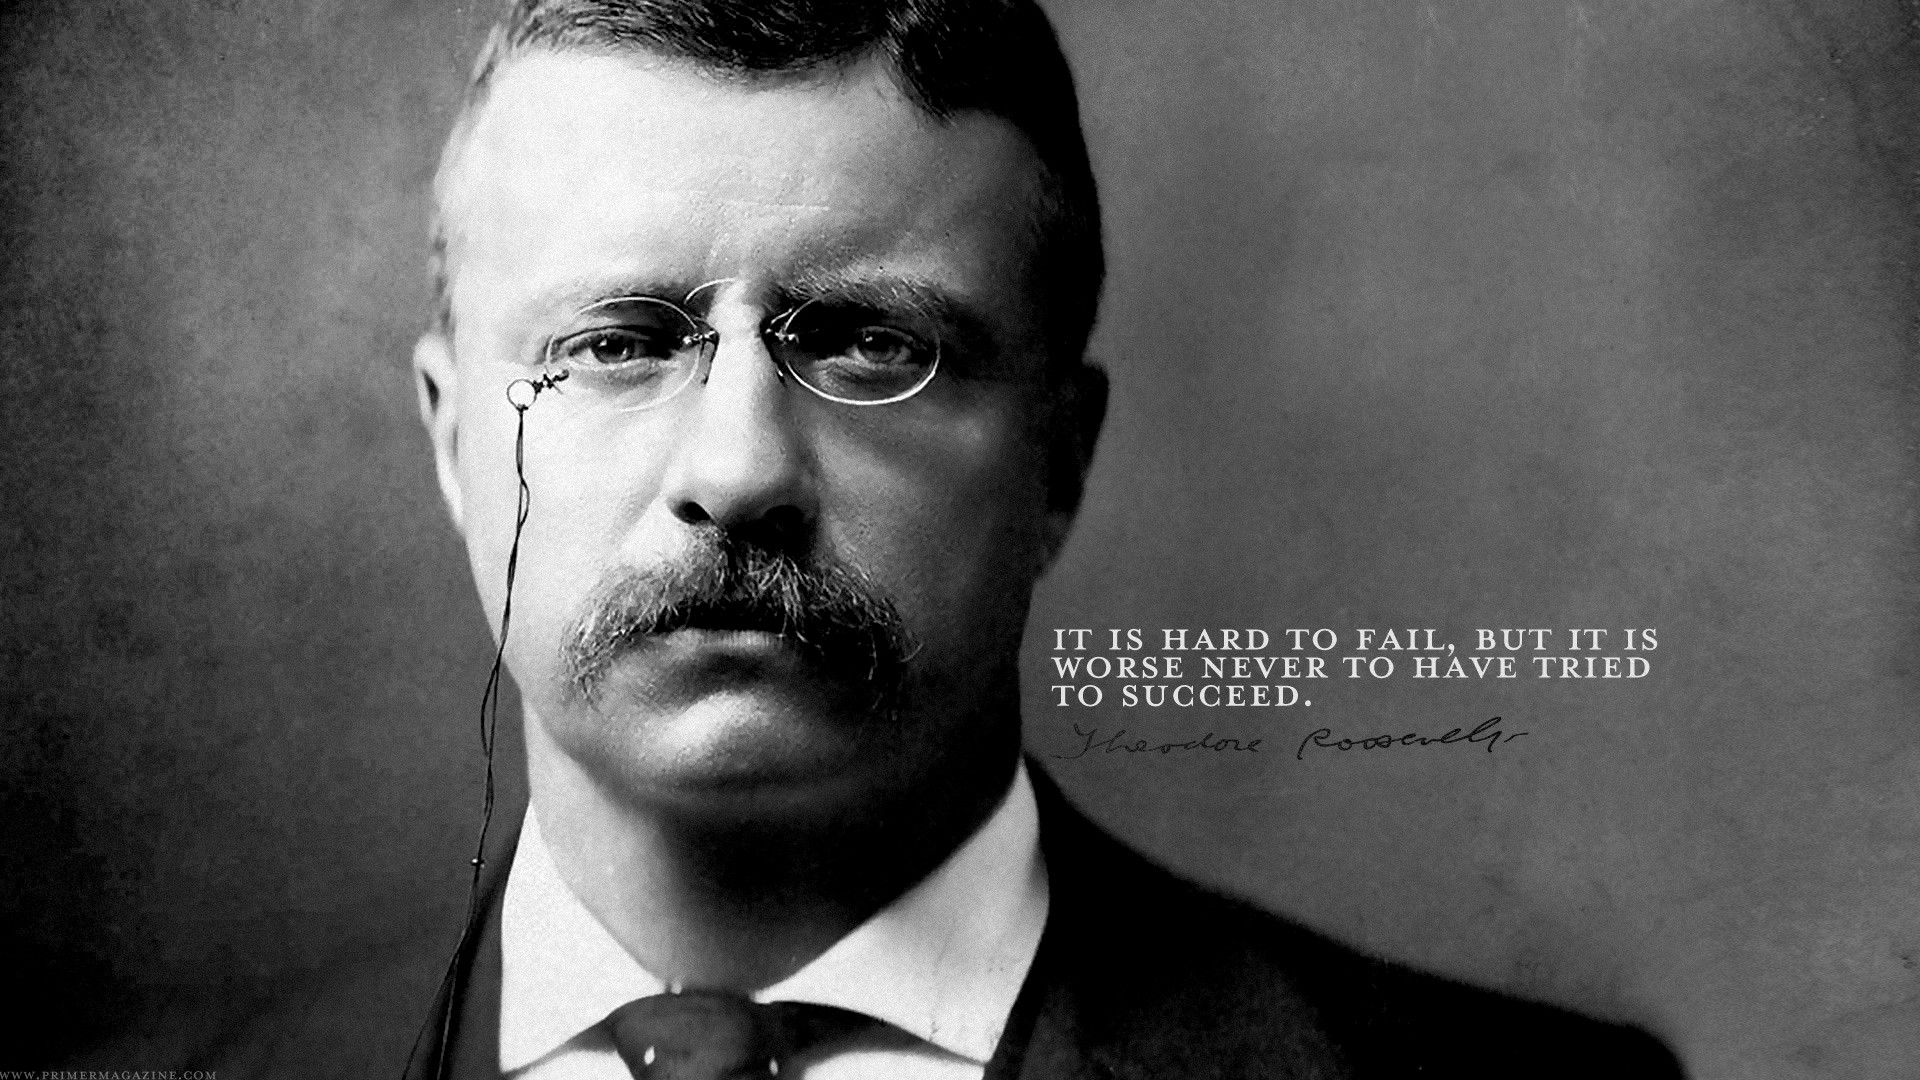 The Worst At Theodore Roosevelt Quotes. QuotesGram